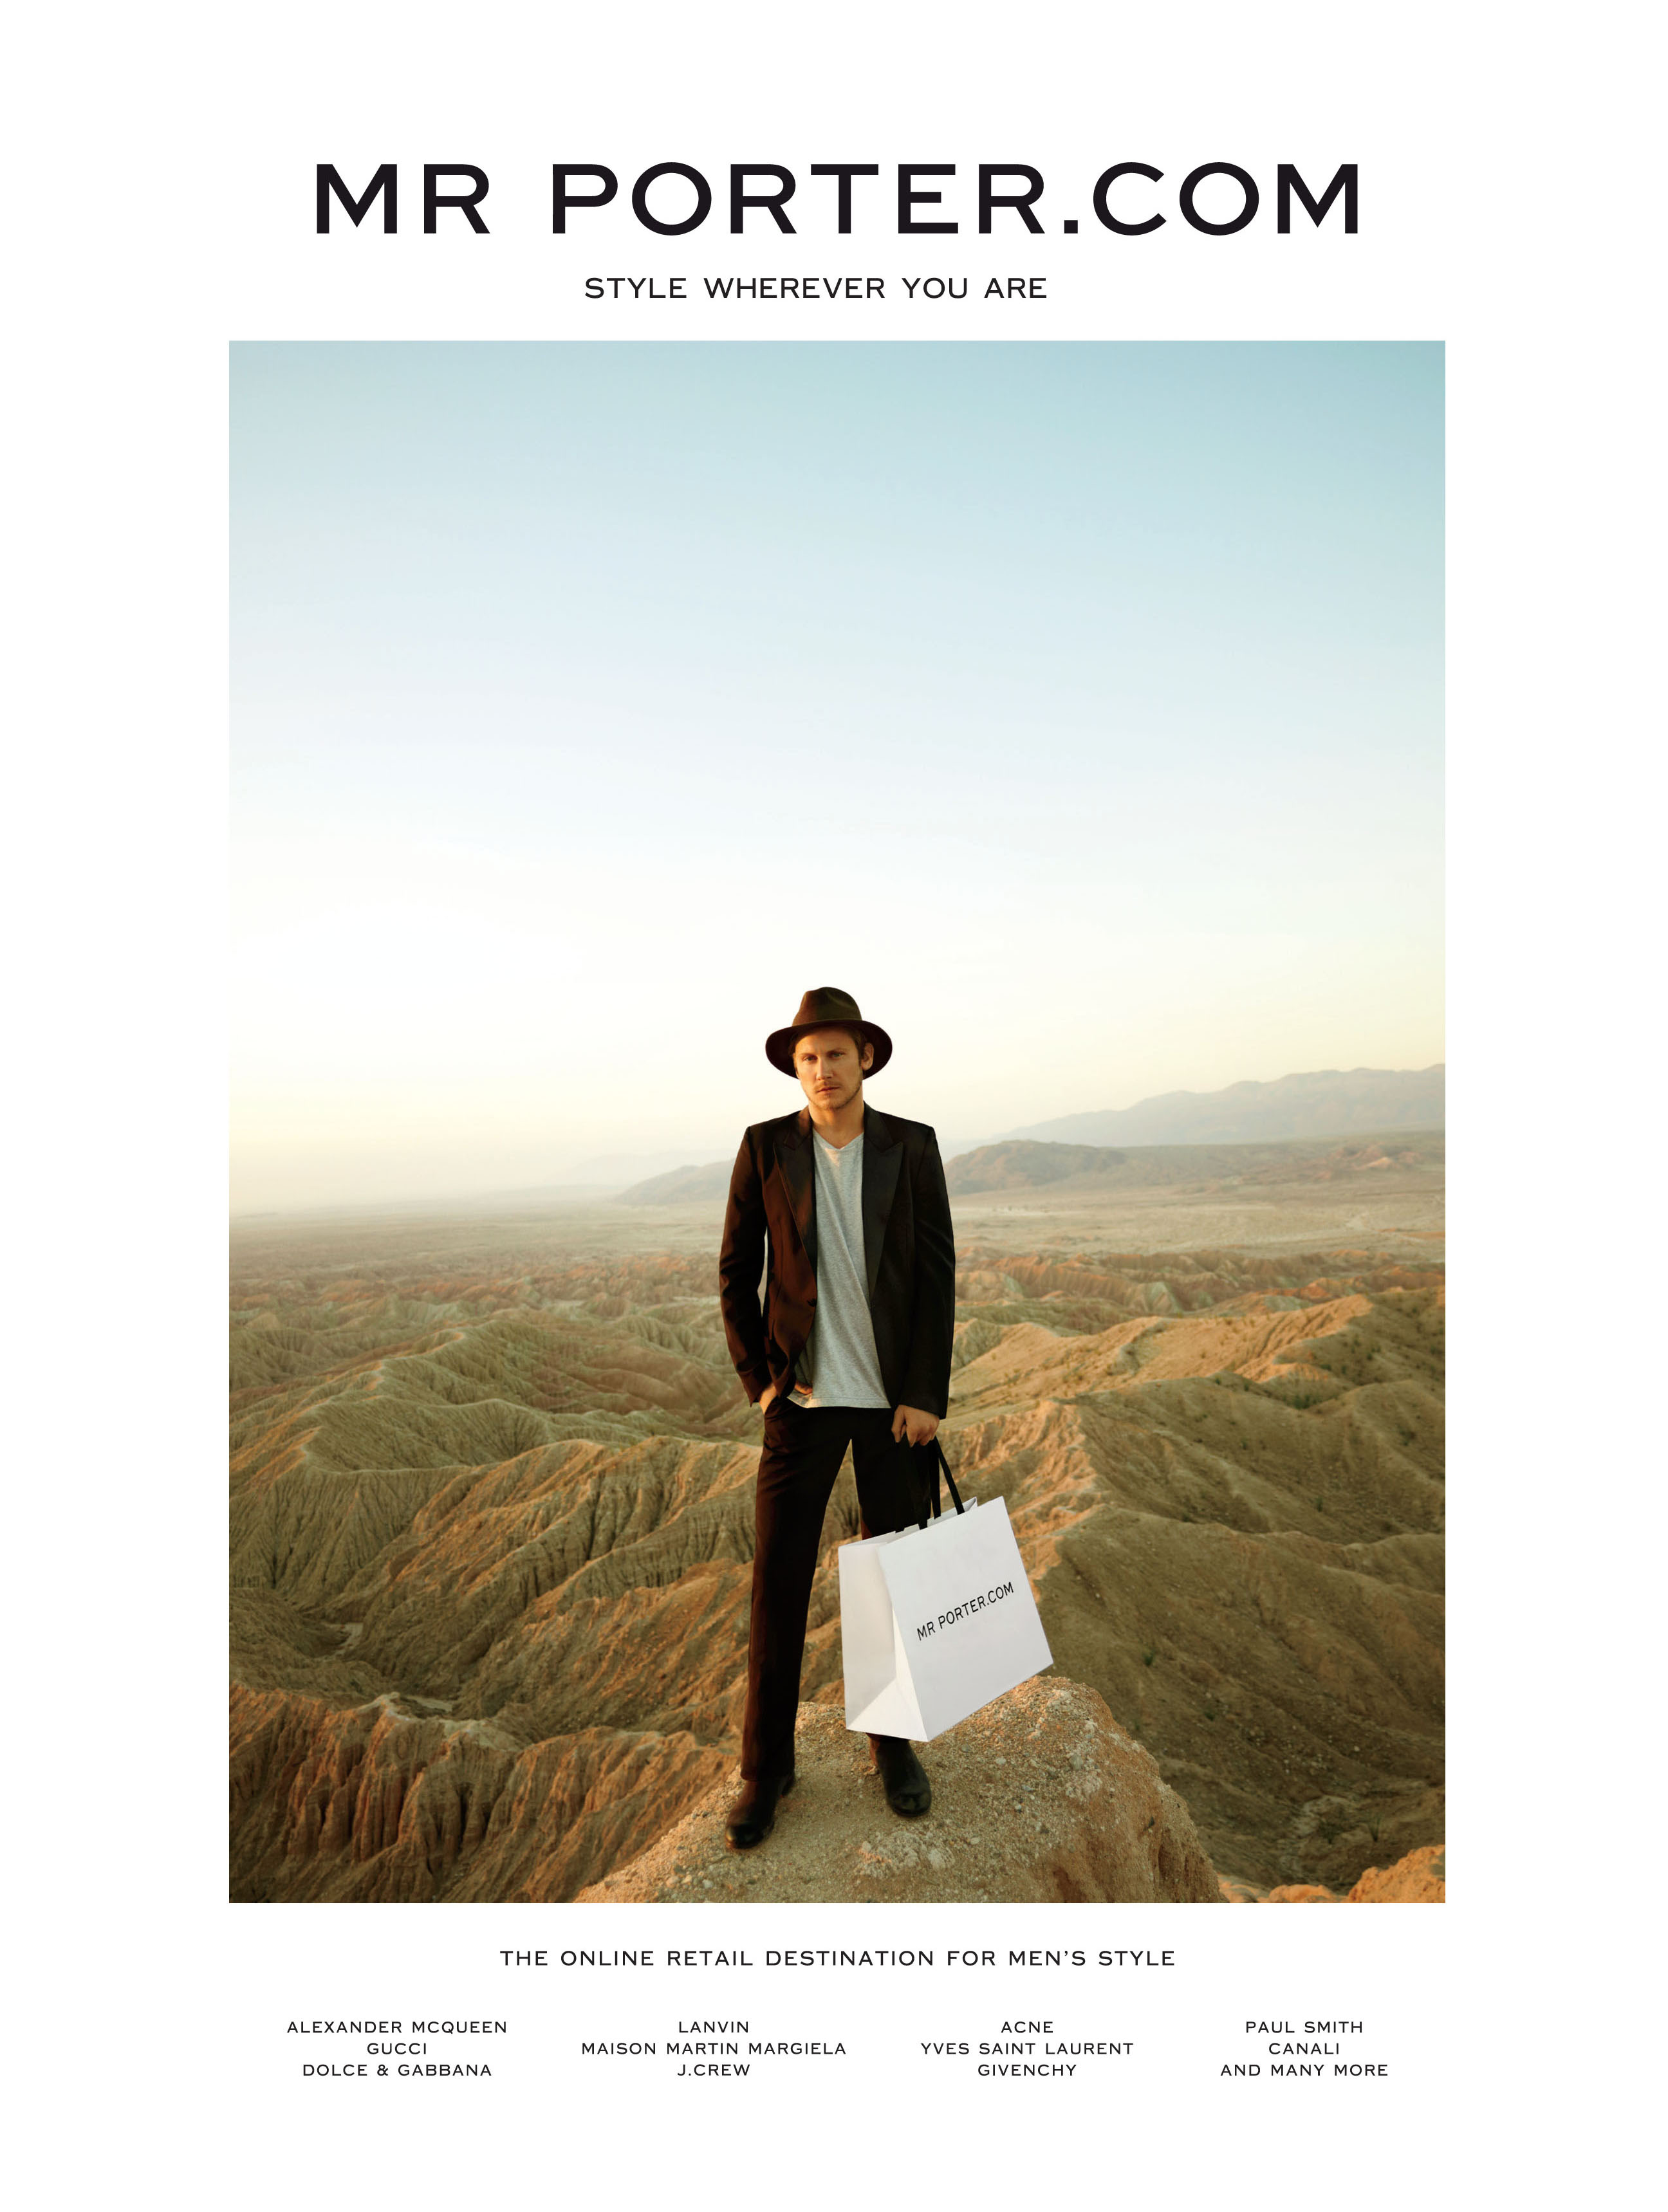 Mr Porter Travels the Globe for their Fall/Winter 2012 Campaign